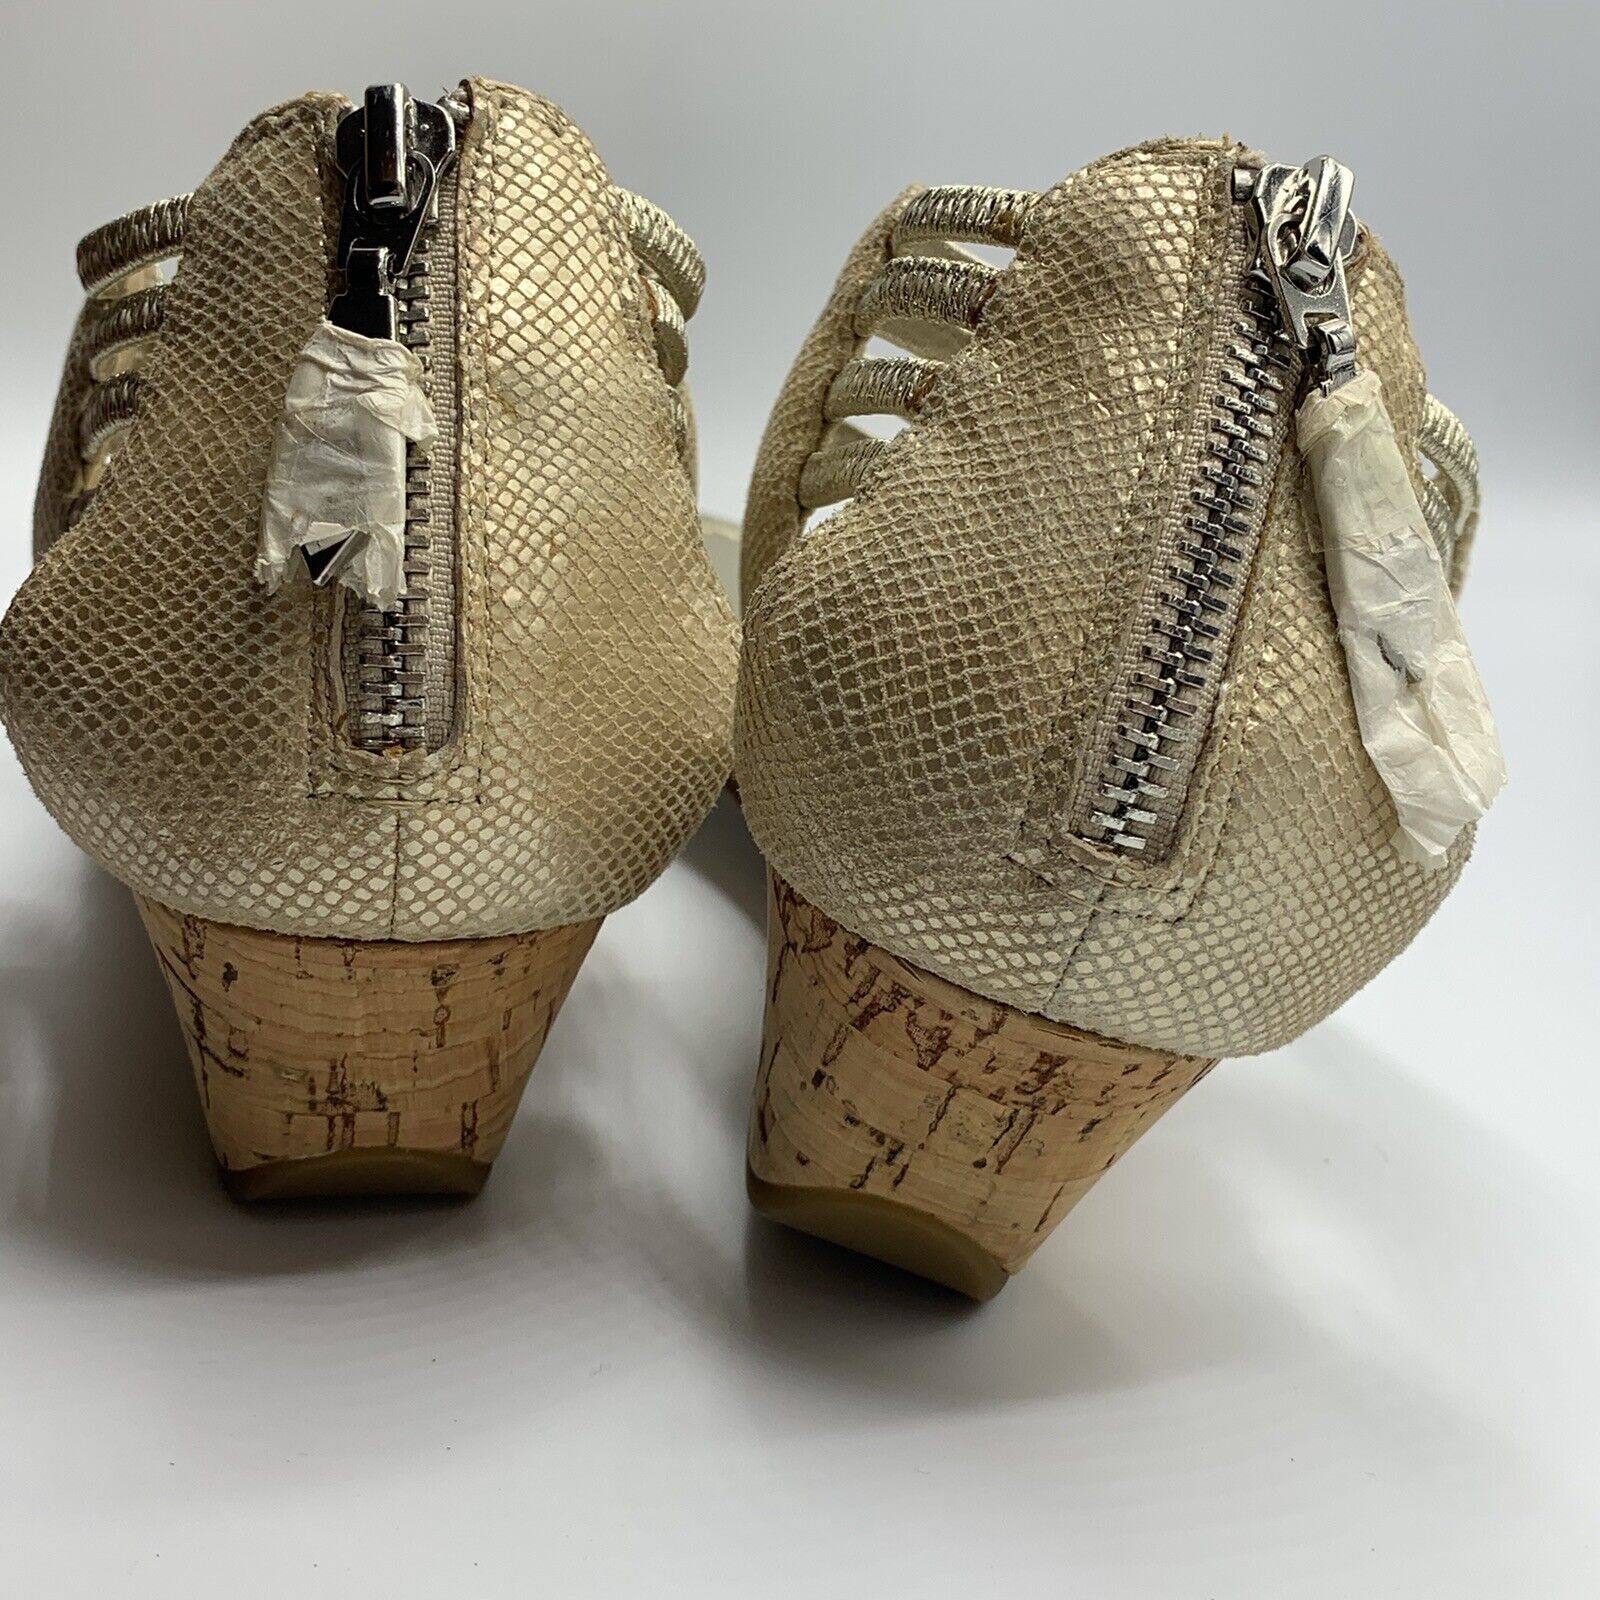 gold strappy sandals - image 3